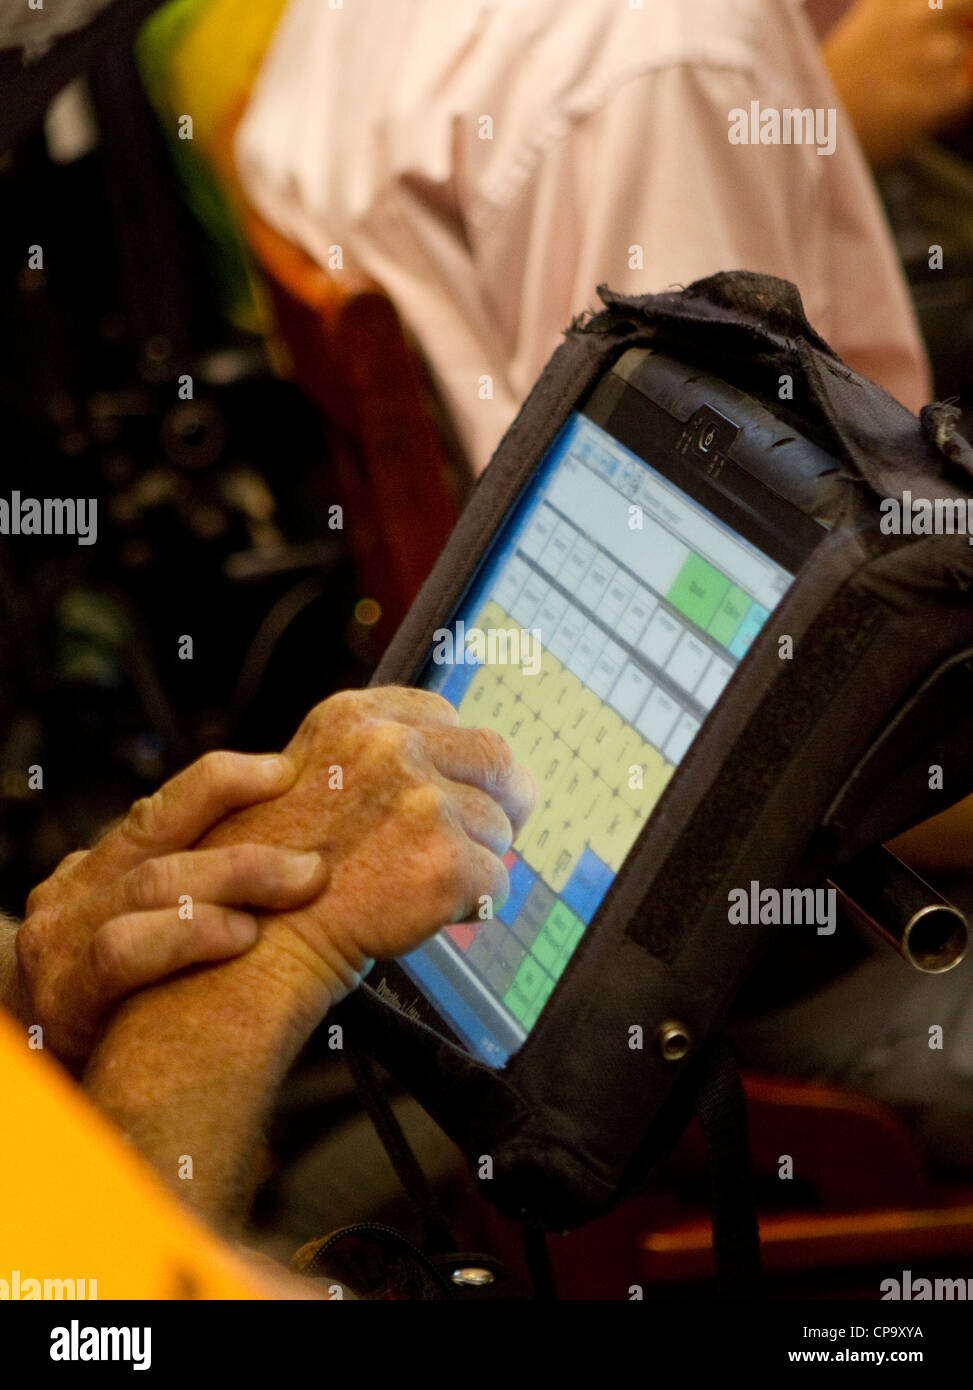 Physically disabled man uses special computer keyboard on his wheelchair to communicate - Stock Image